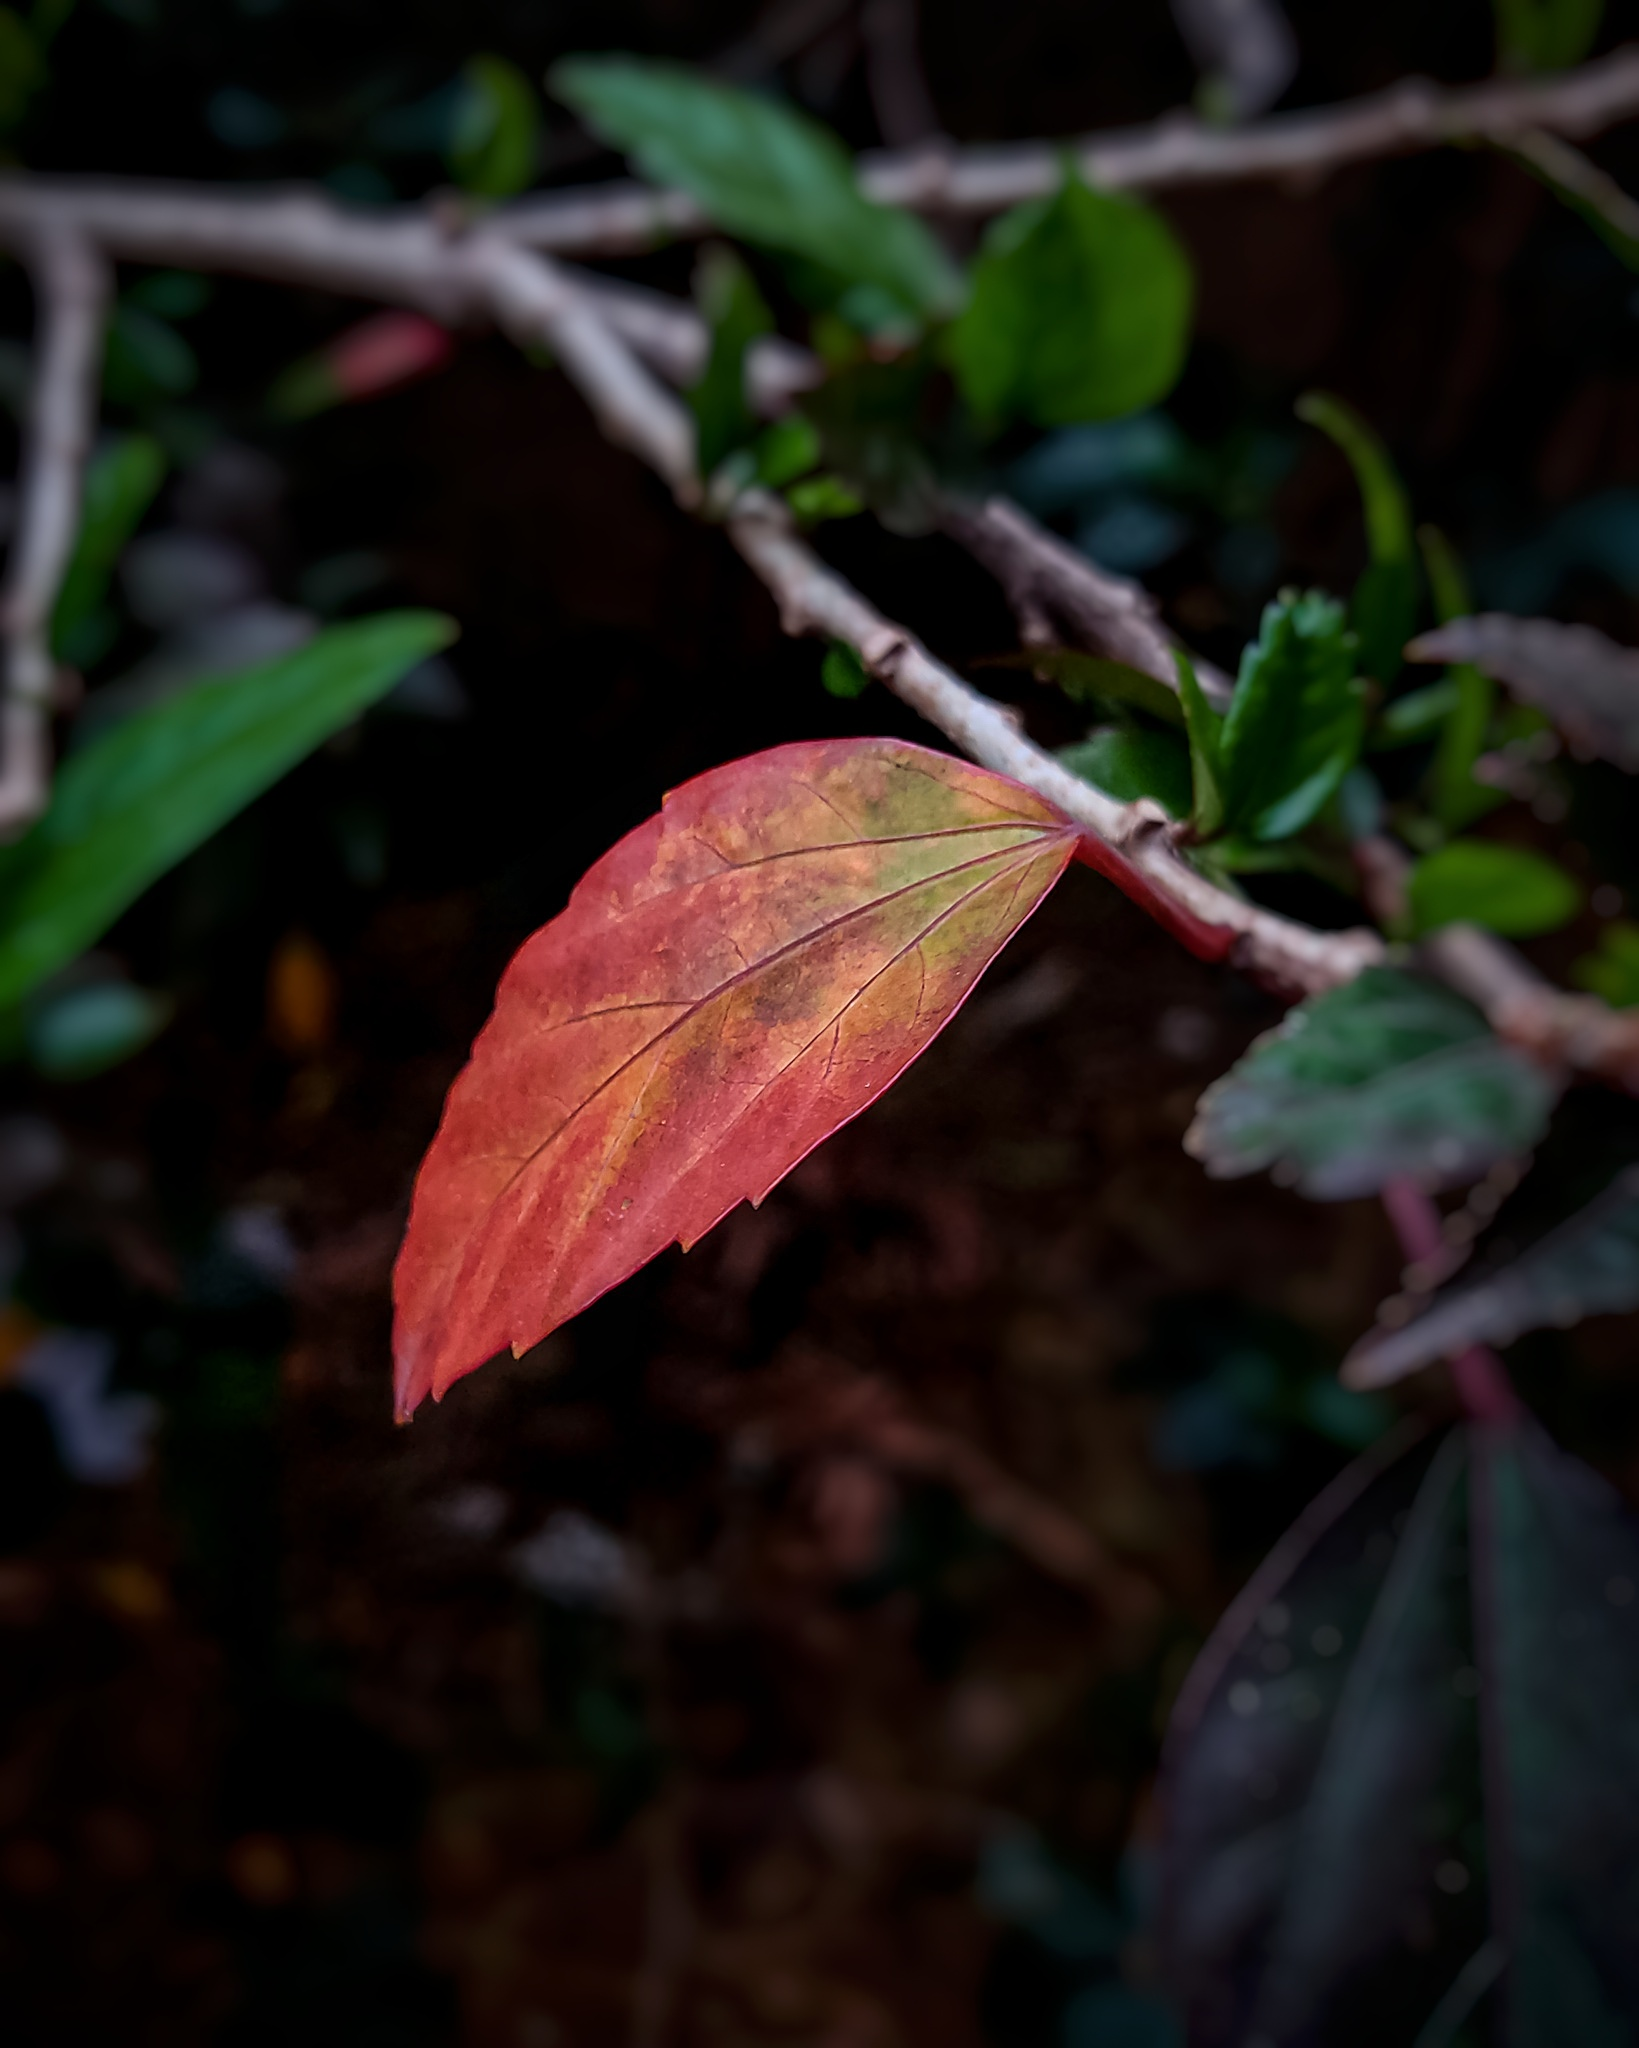 Portrait of a dried red leaf